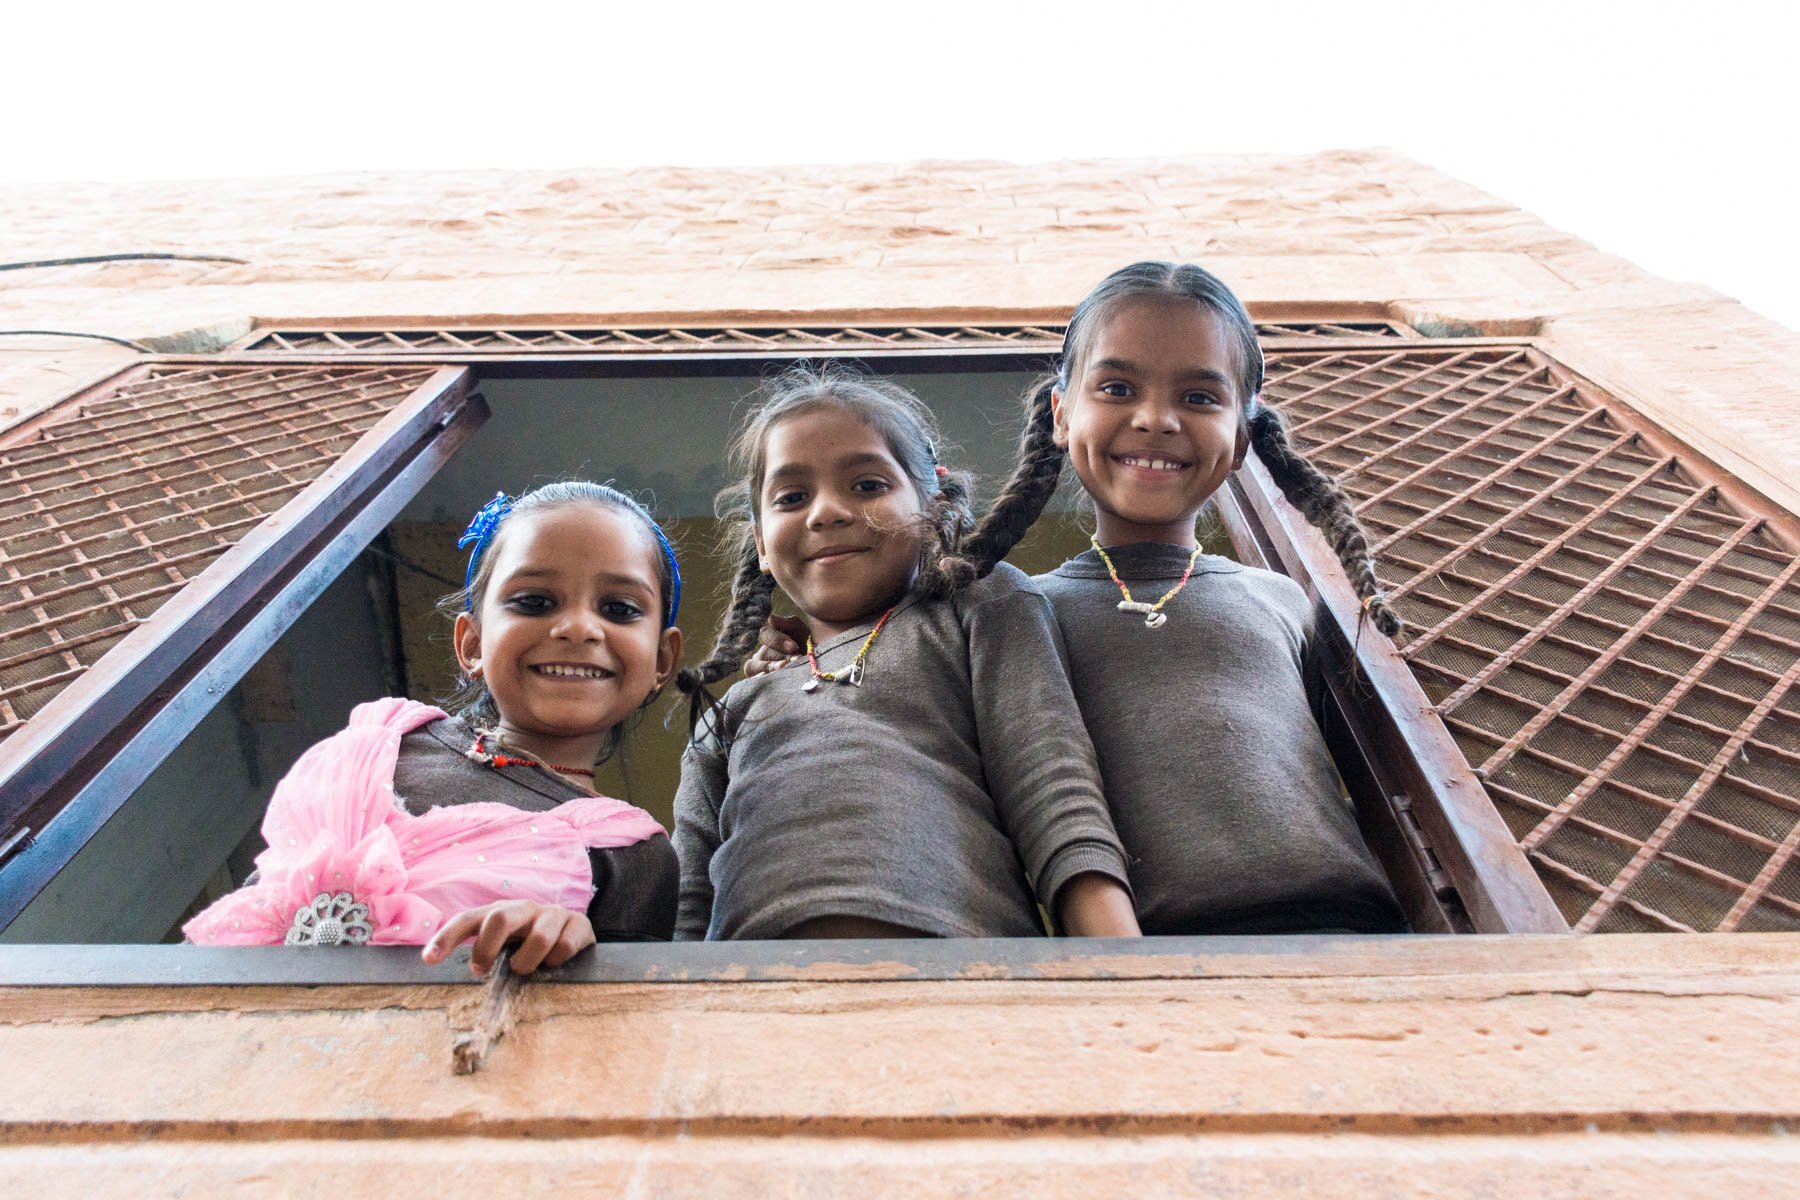 Girls hanging out the window in Jodhpur